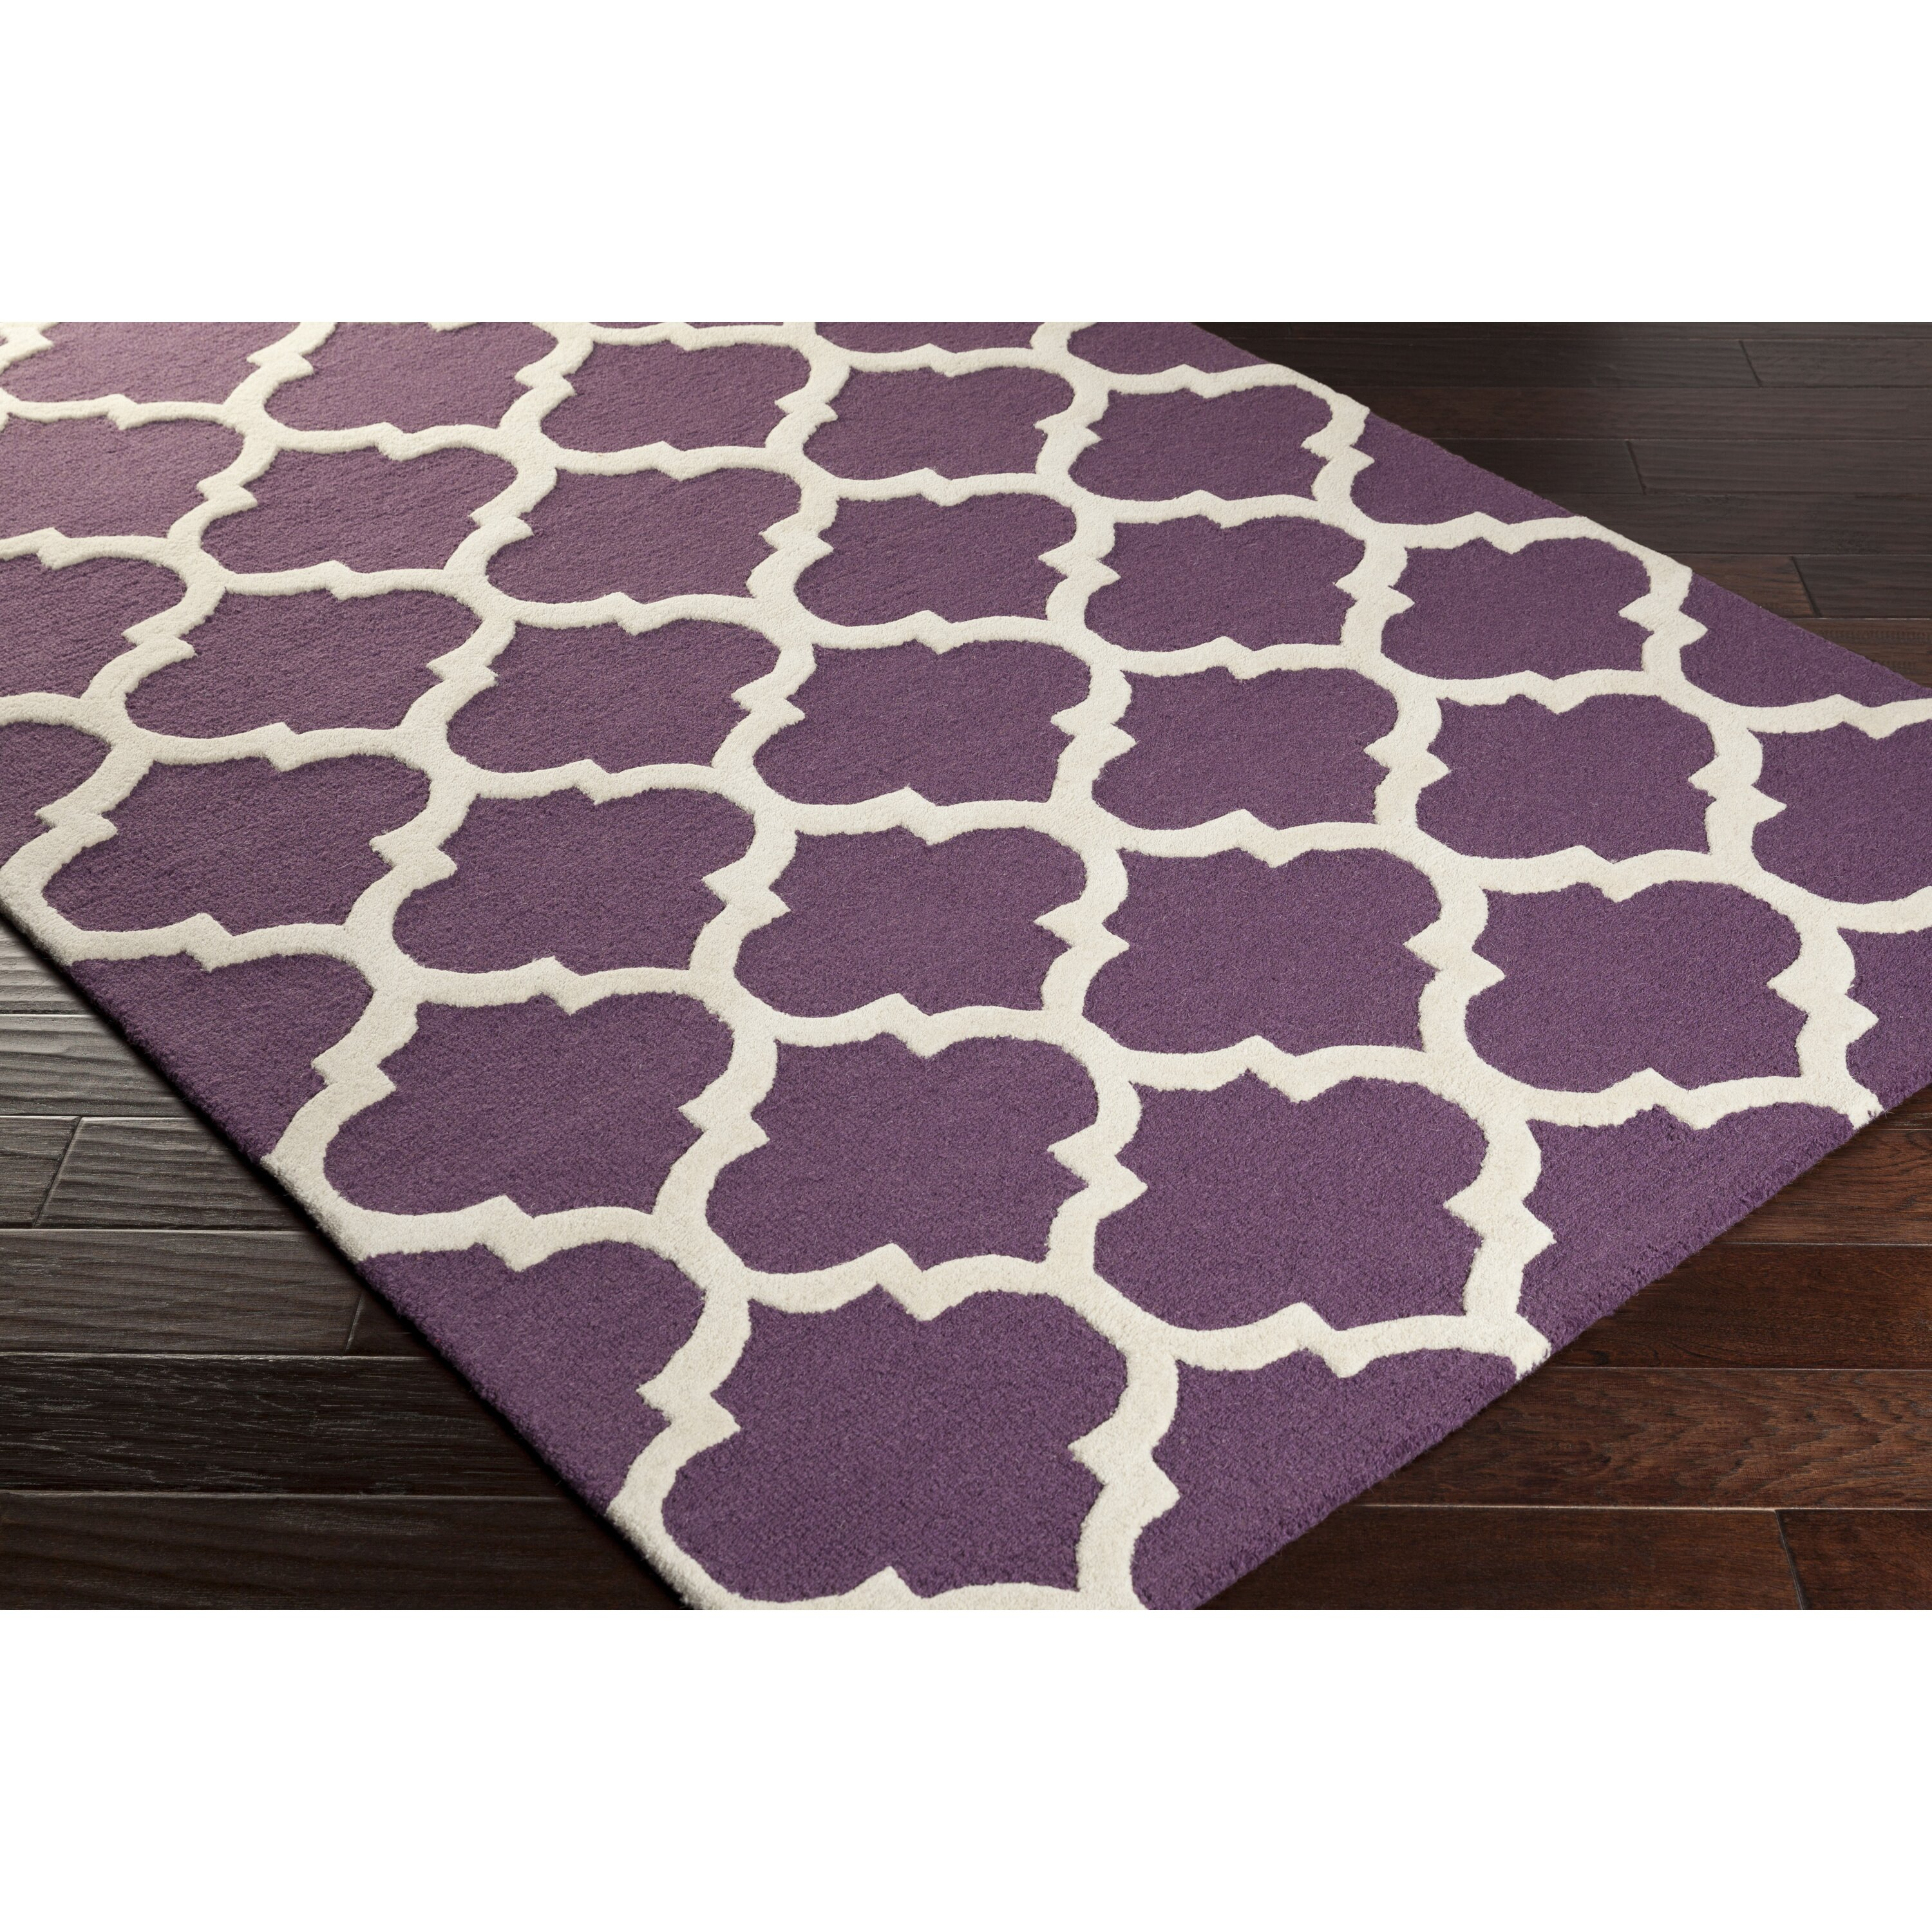 Xl Purple Rug: Artistic Weavers Pollack Purple Geometric Stella Area Rug